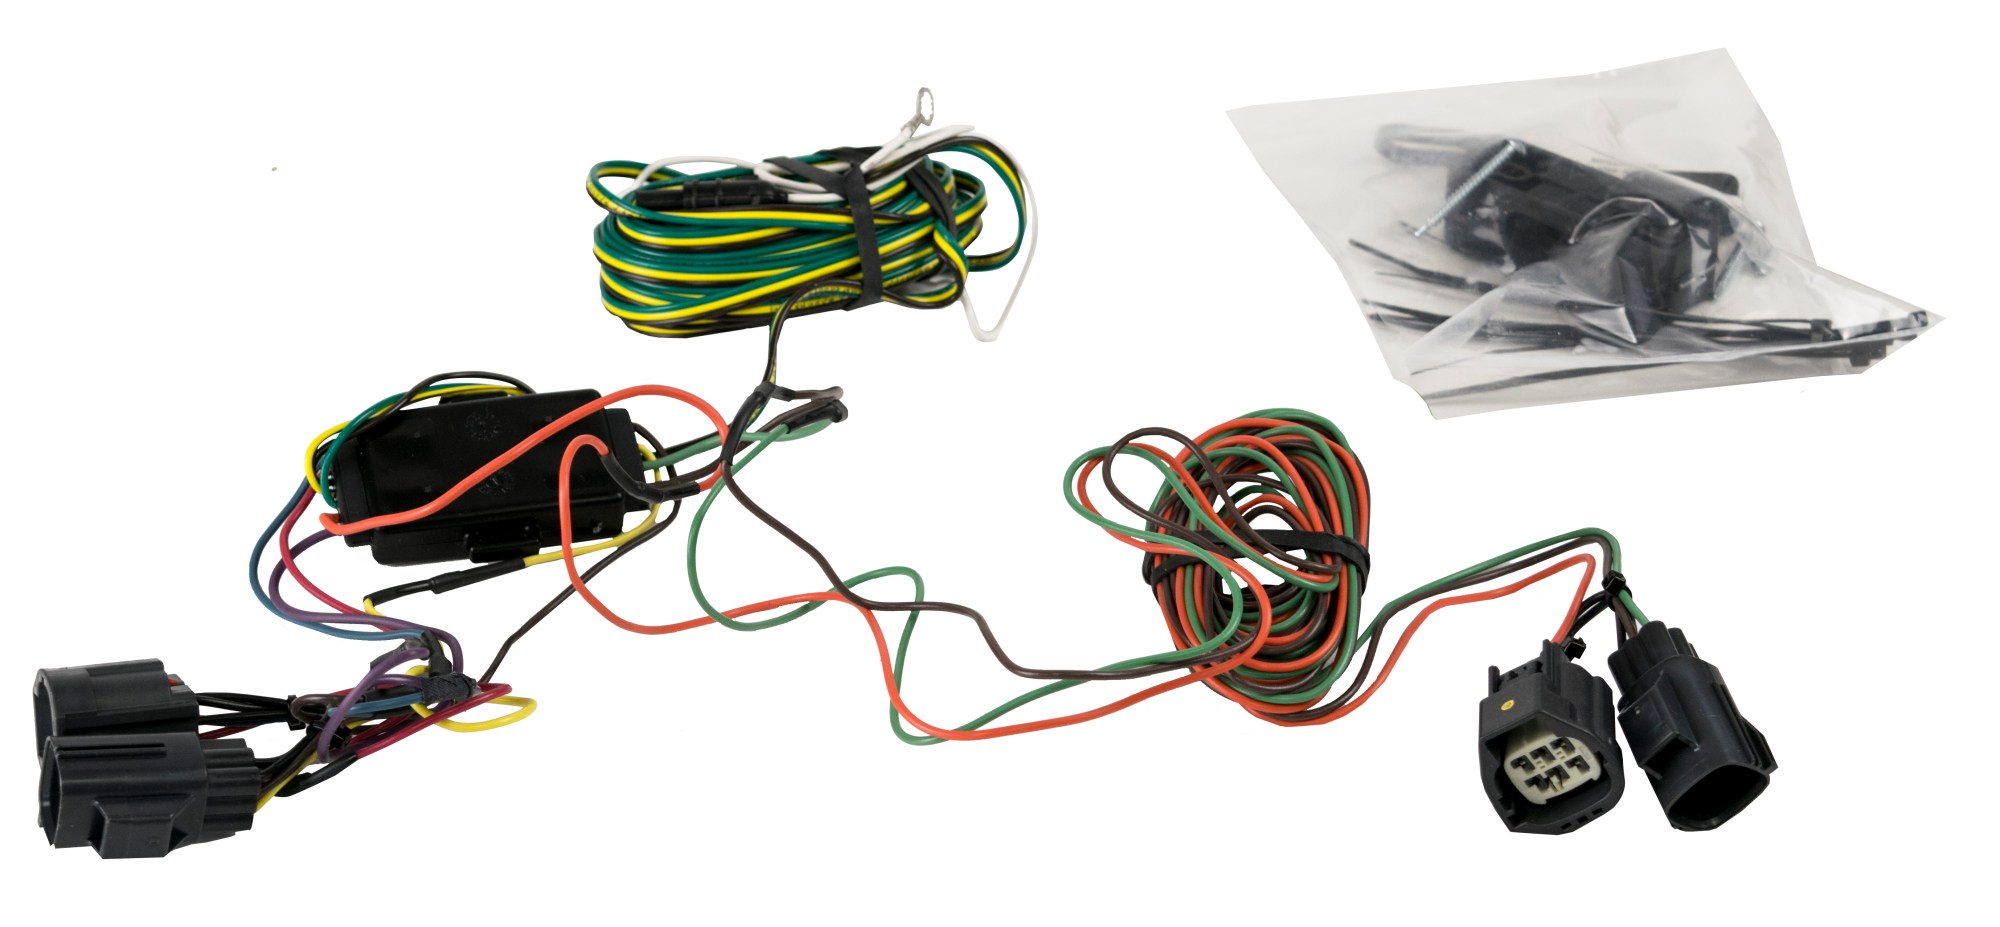 hight resolution of demco rv 9523146 towed vehicle wiring kit custom fit plug in image 1 of zoomed image